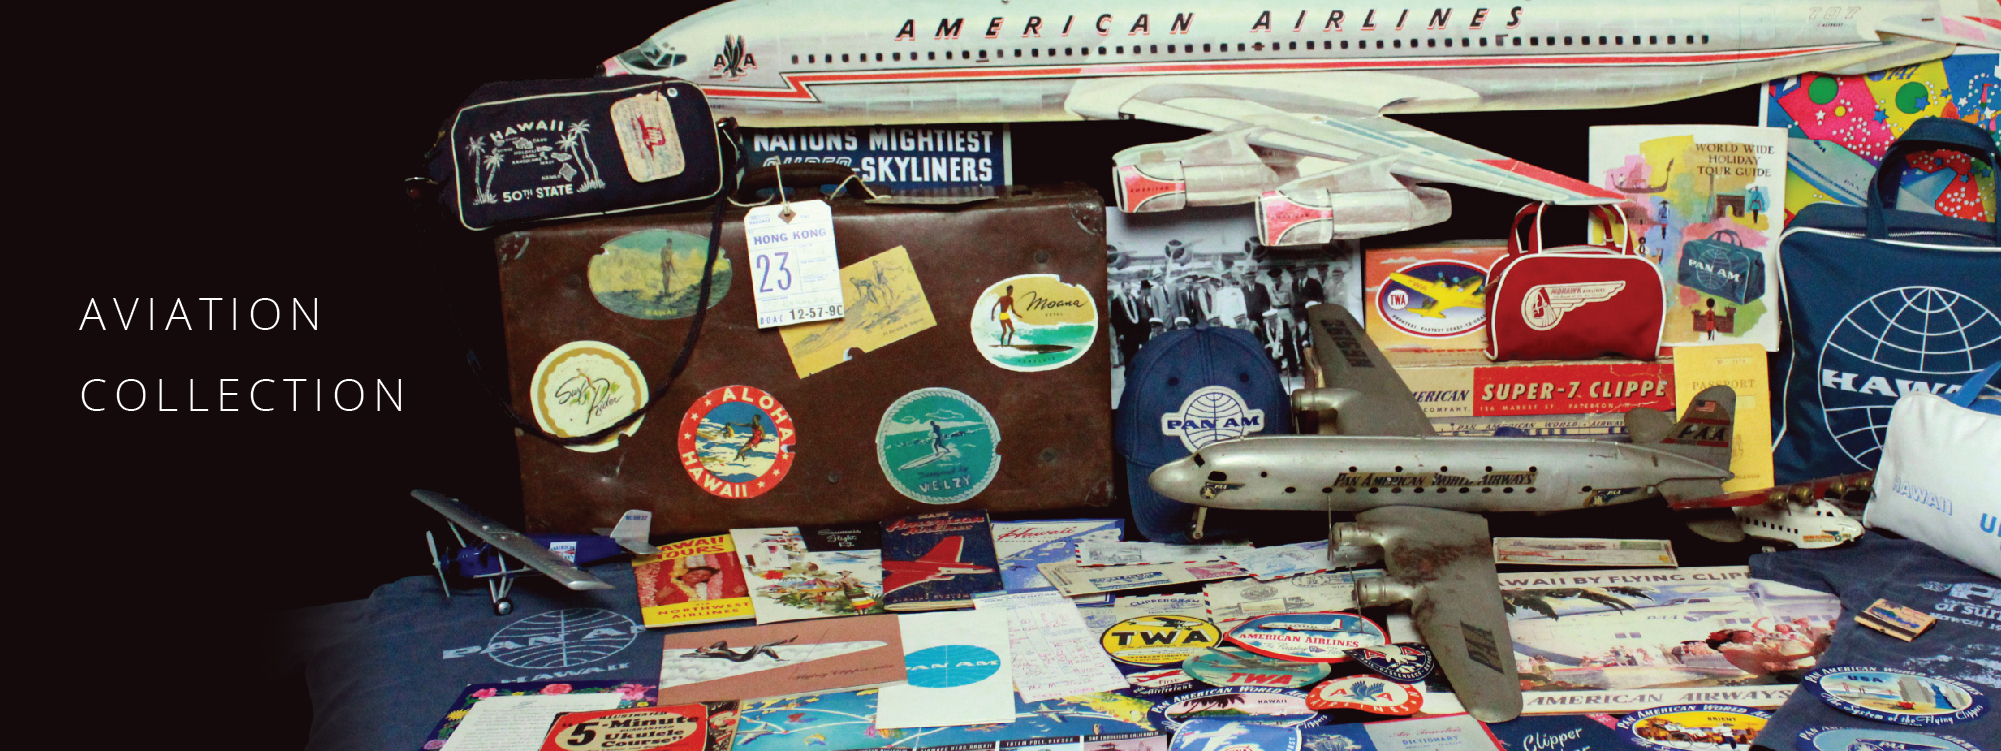 aviation t-shirts, pan am bags, pan am t-shirts